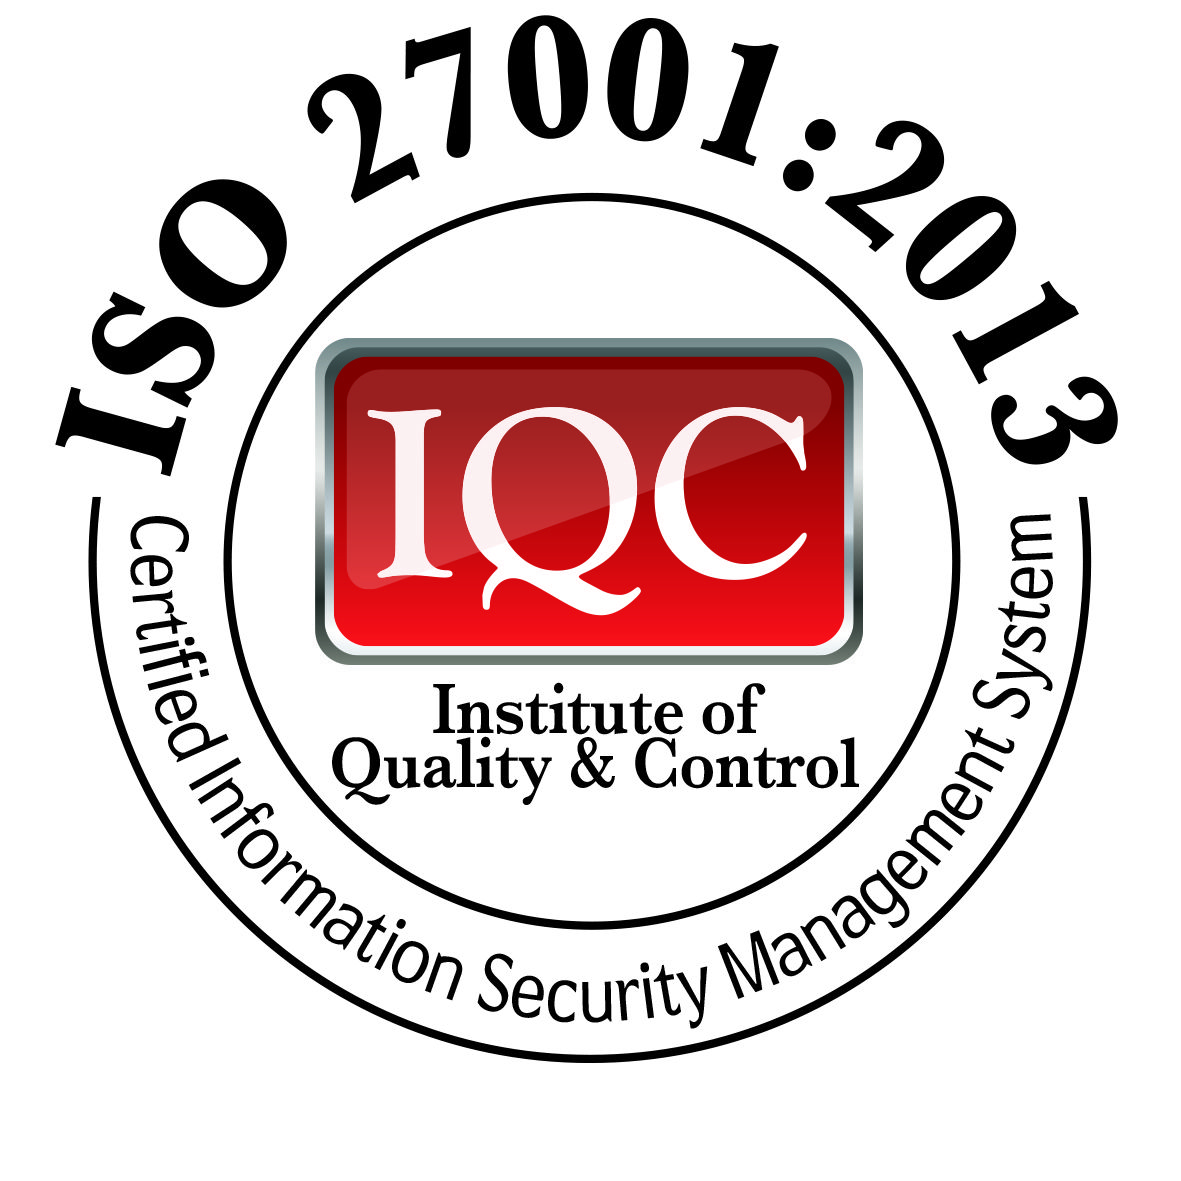 iso 27001 certified banks in india